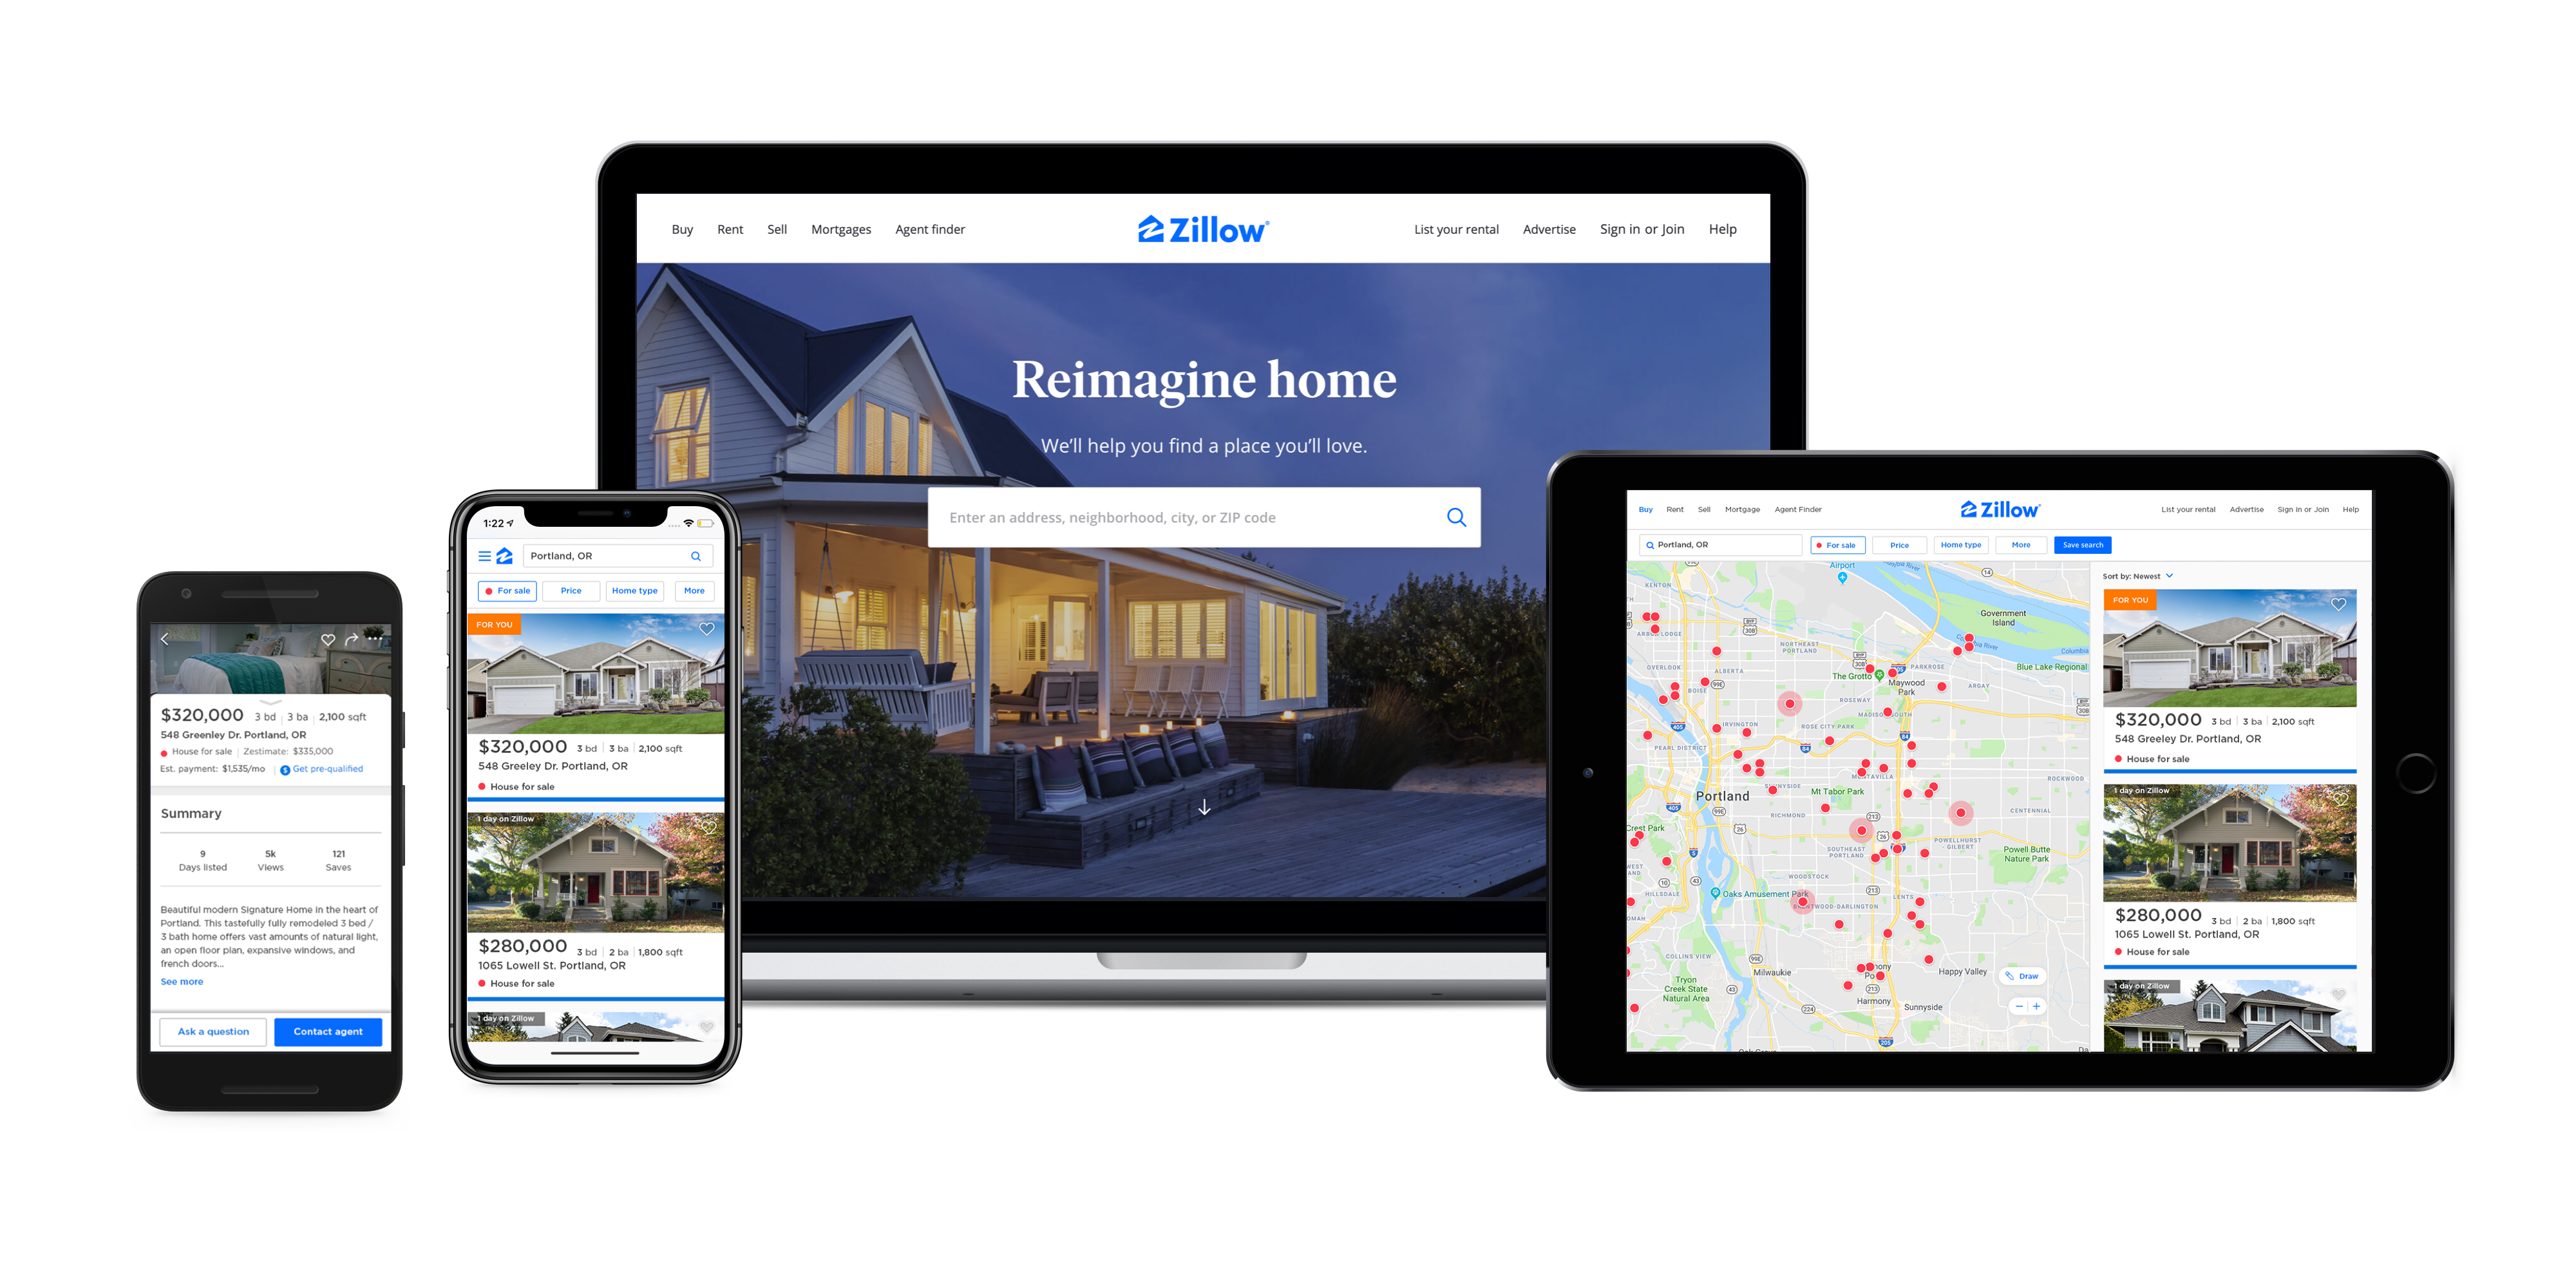 D.RHorton partners with Zillow to boost new home sales